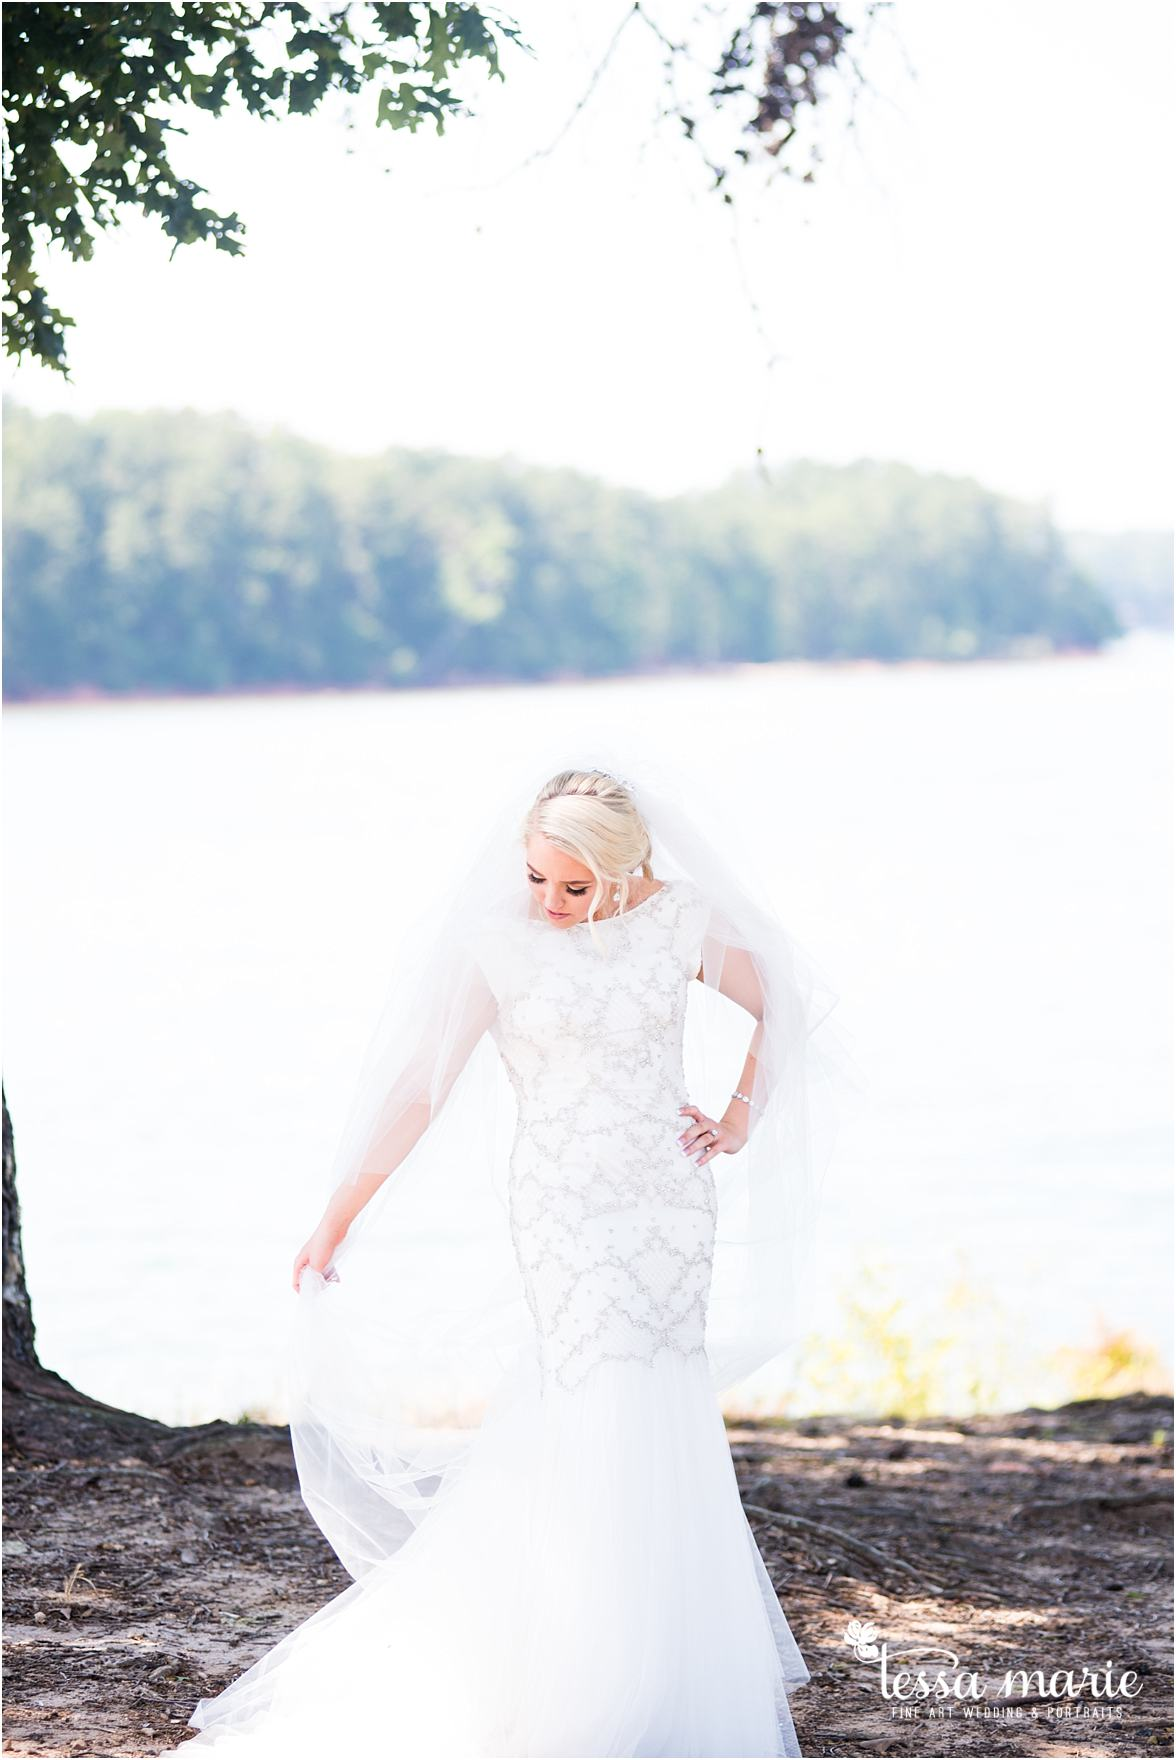 lake_lanier_wedding_summer_pictures_legacy_moments_family_candid_atlantas_best_wedding_photographer_tessa_marie_weddings_lake_lanier_bride_out_door_wedding_0097